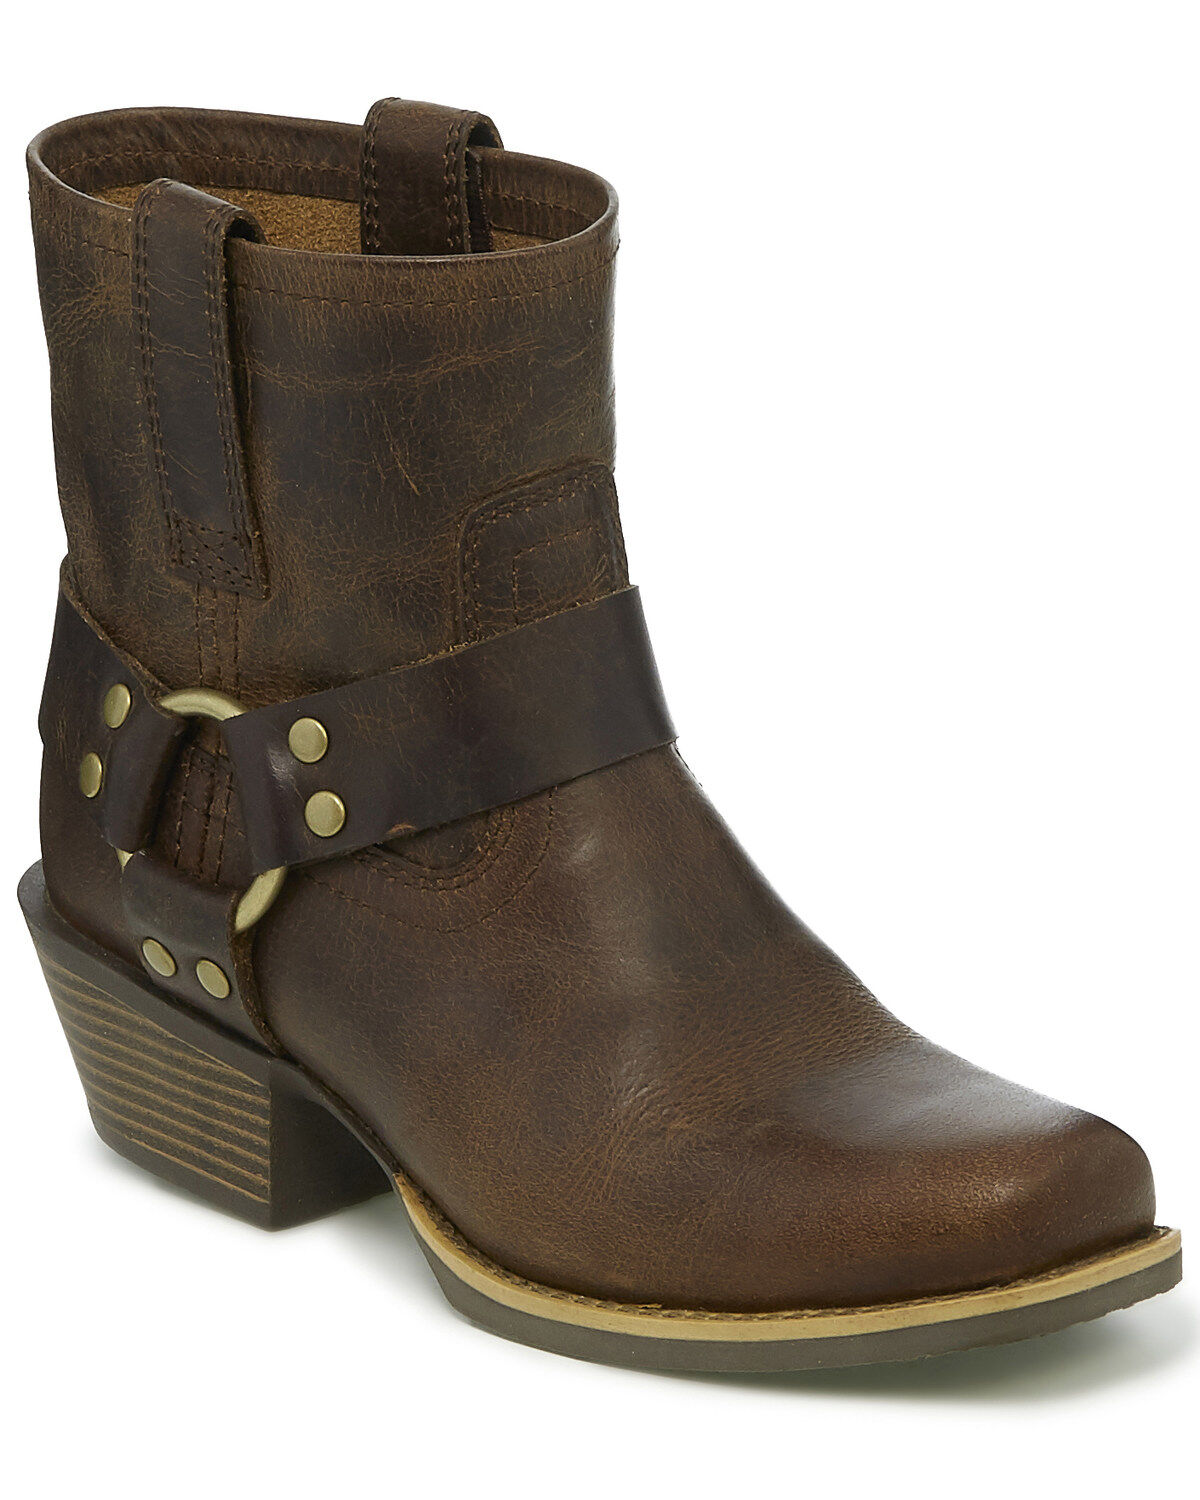 Women's Motorcycle Boots - Boot Barn